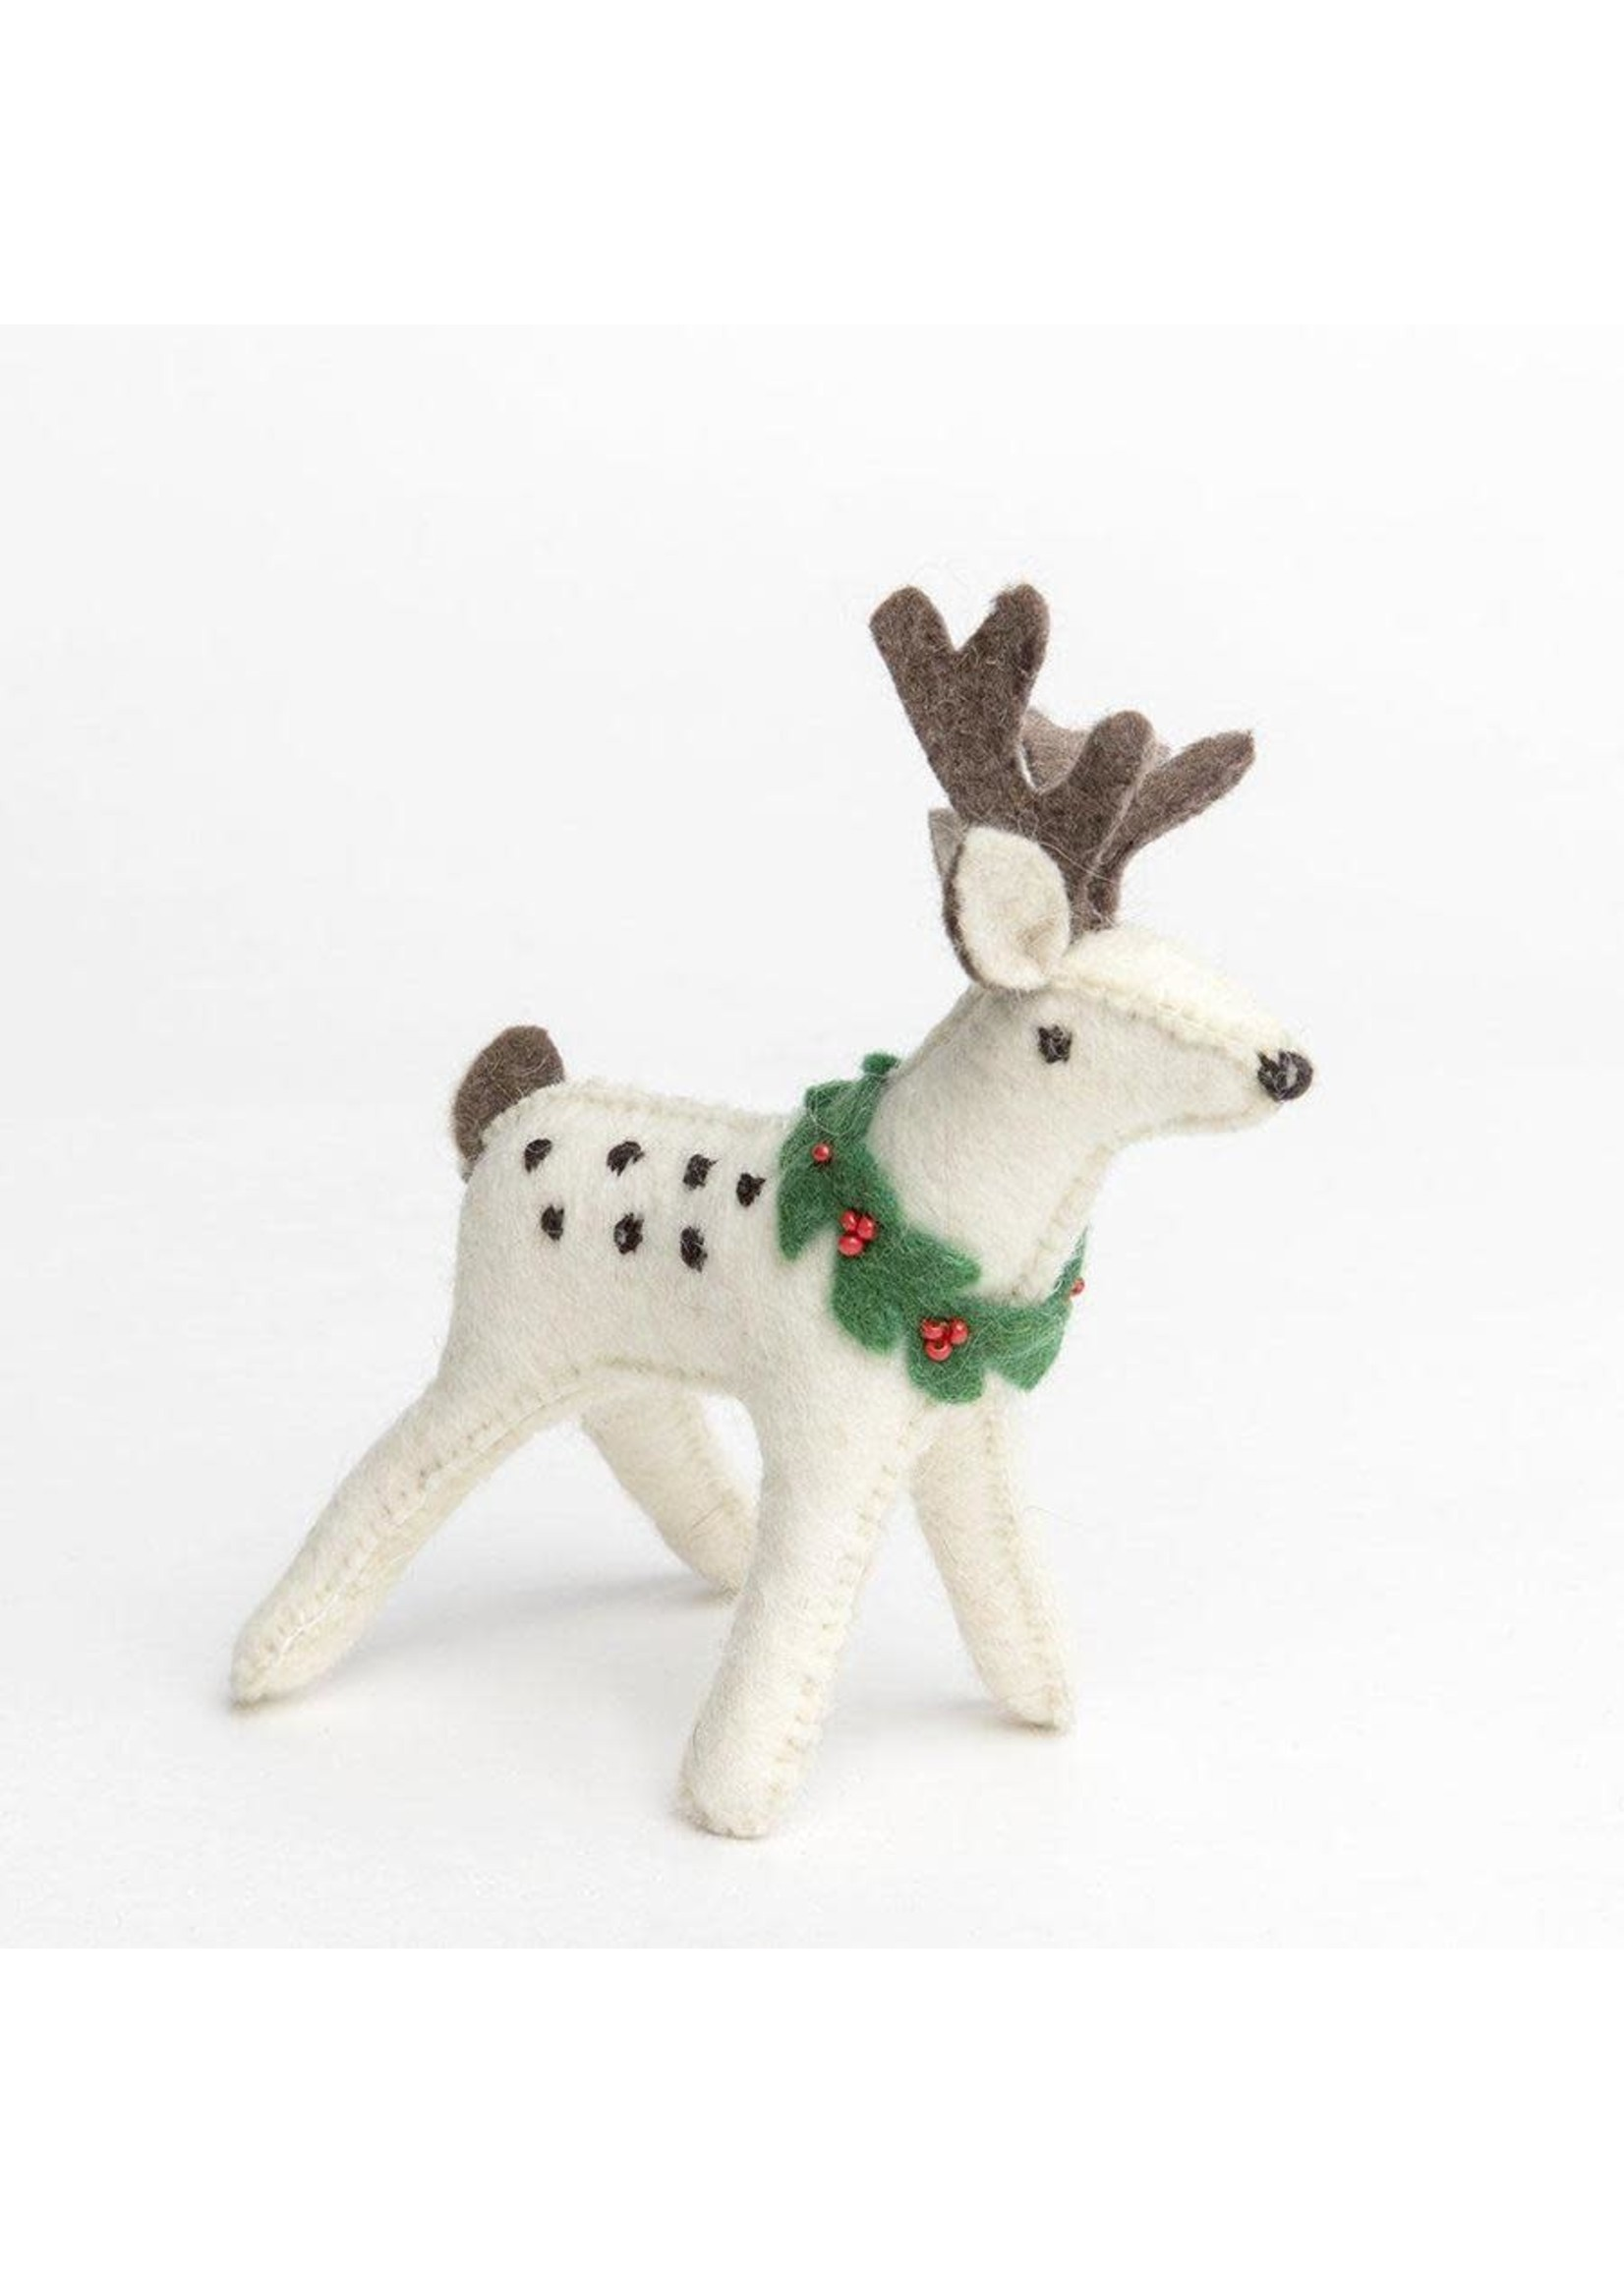 Ornament - Snow Buck - White Deer with Dots